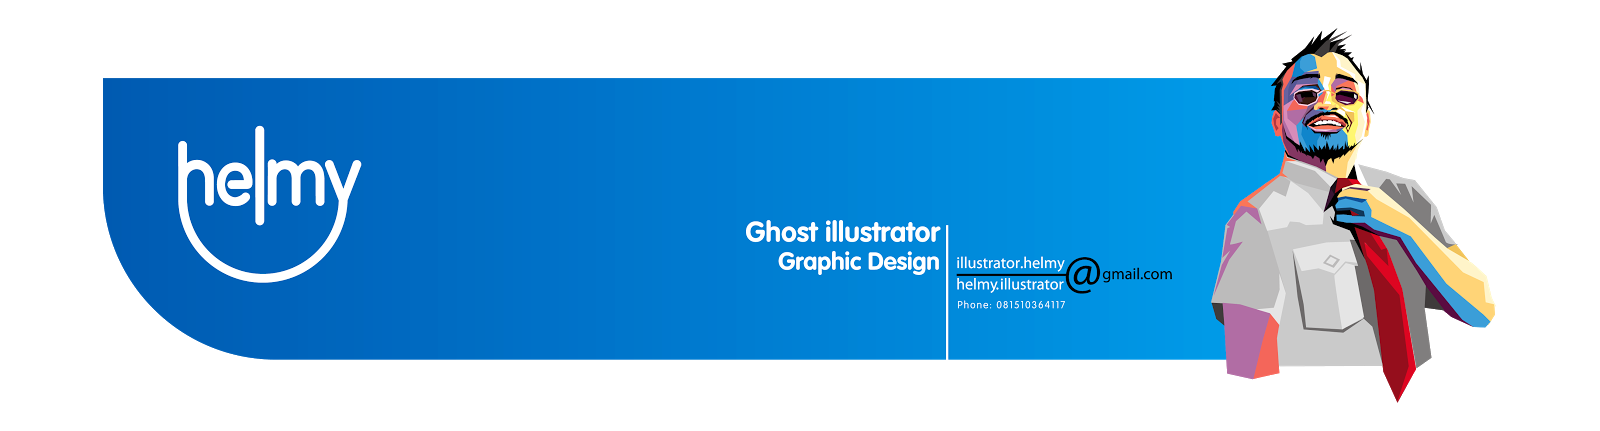 ghost illustrator